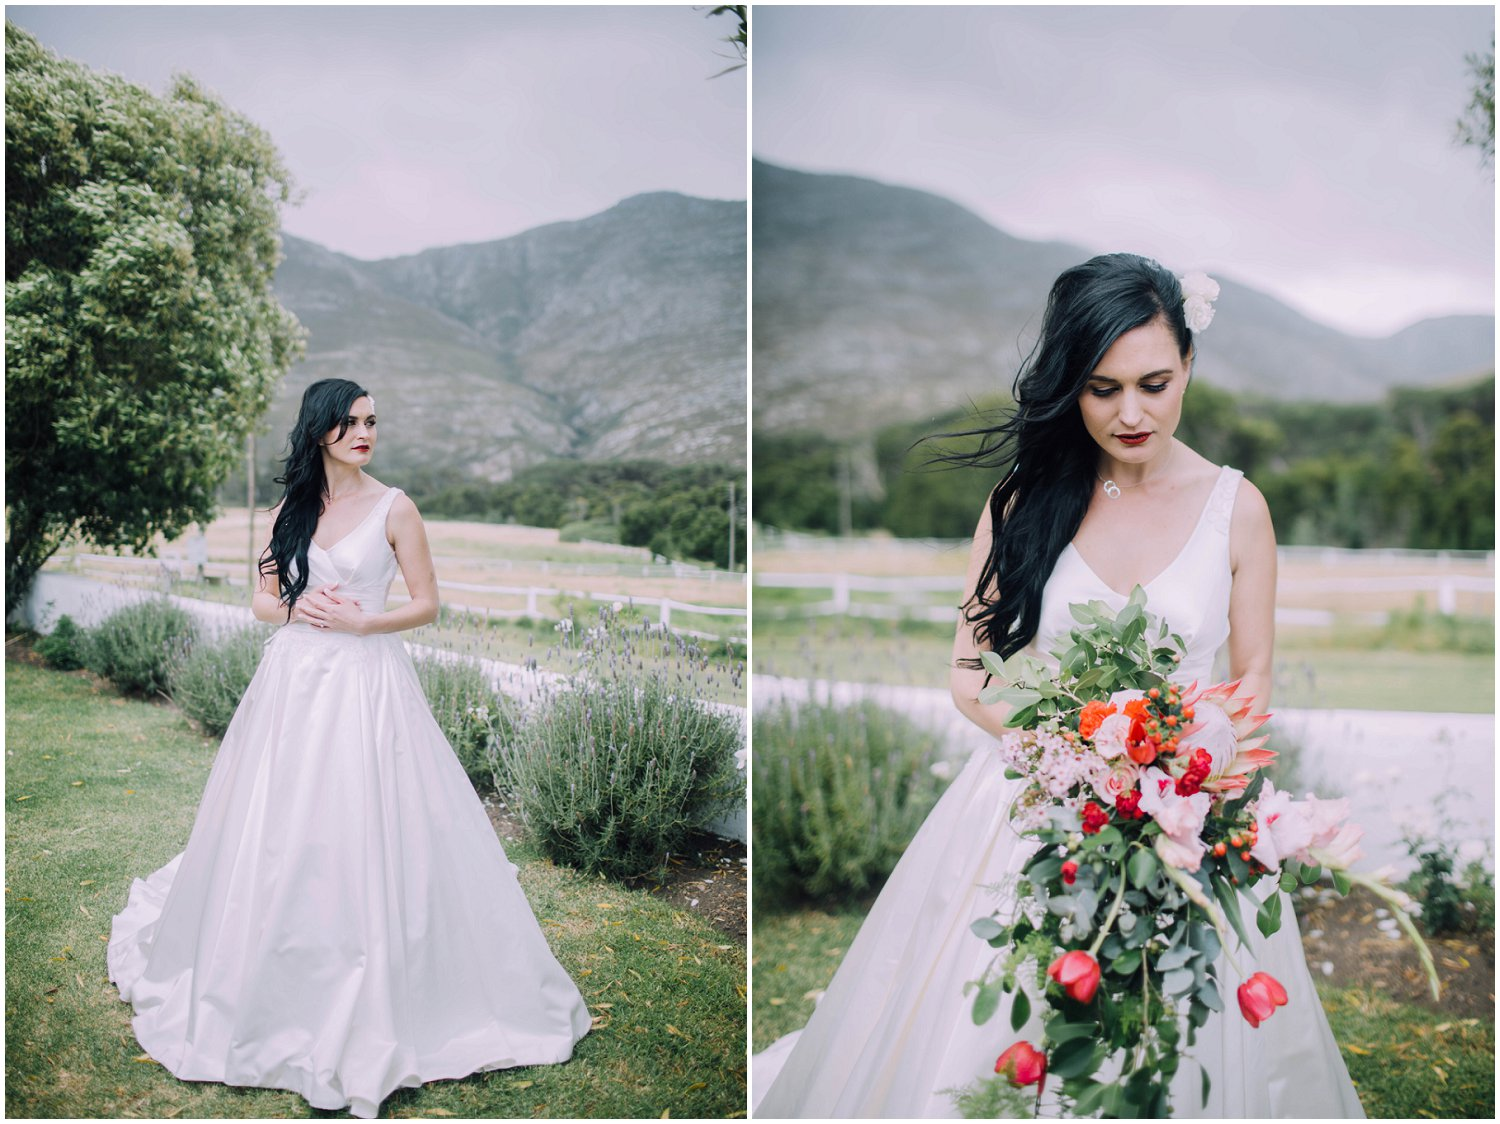 Top Wedding Photographer Cape Town South Africa Artistic Creative Documentary Wedding Photography Rue Kruger_0836.jpg